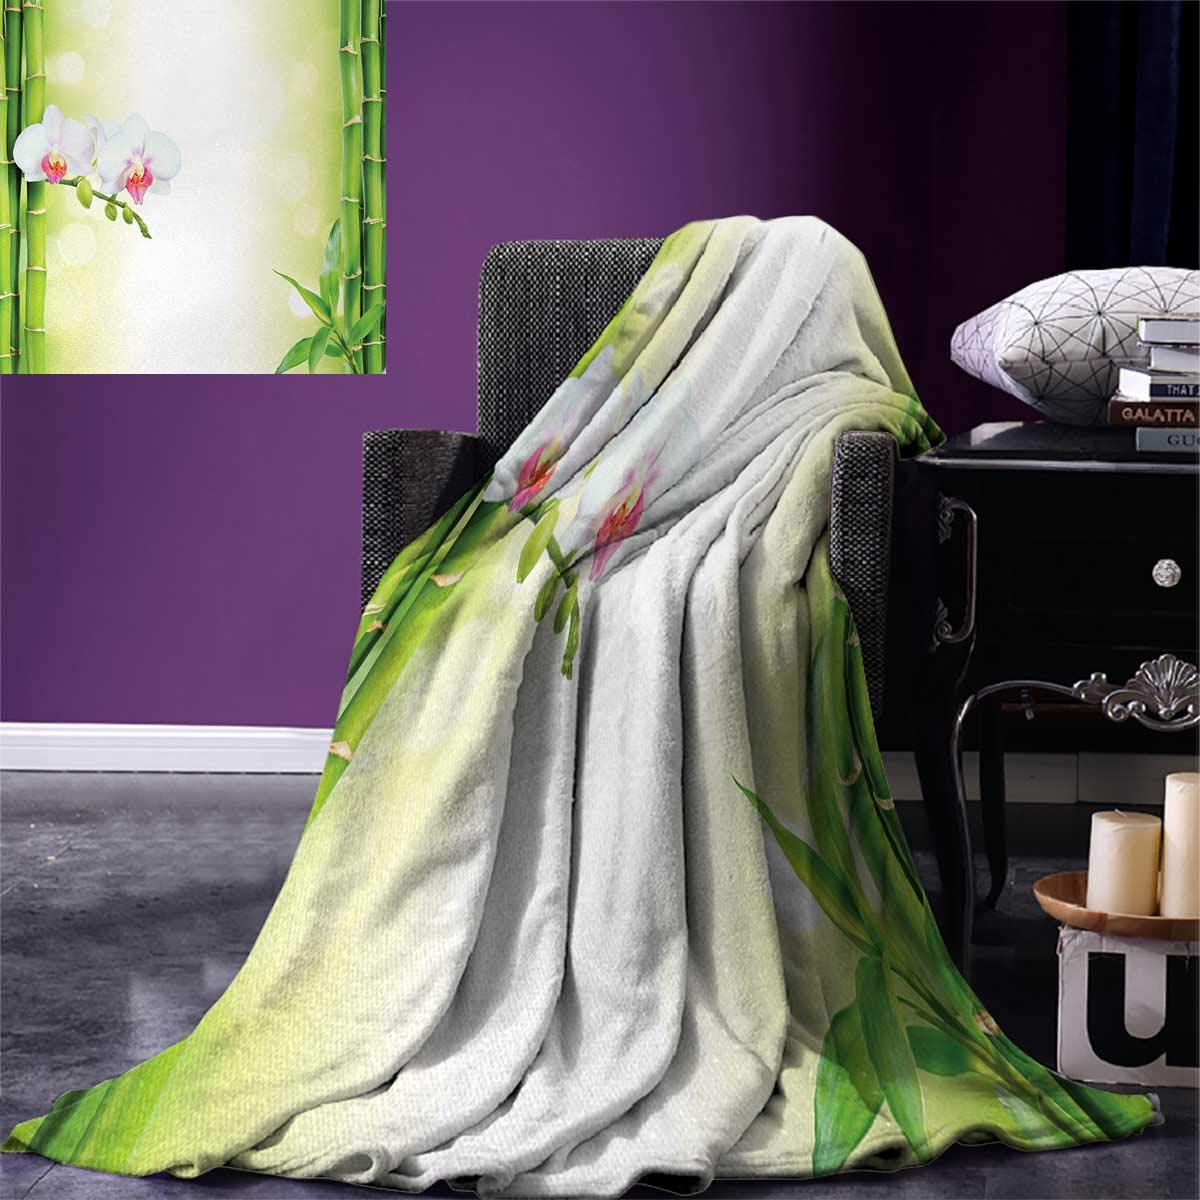 Spa Digital Printing Blanket Orchid Flowers with Bamboo Branches in Vibrant Colors Spiritual Practice Theme Summer Quilt Comforter 80''x60'' White and Green